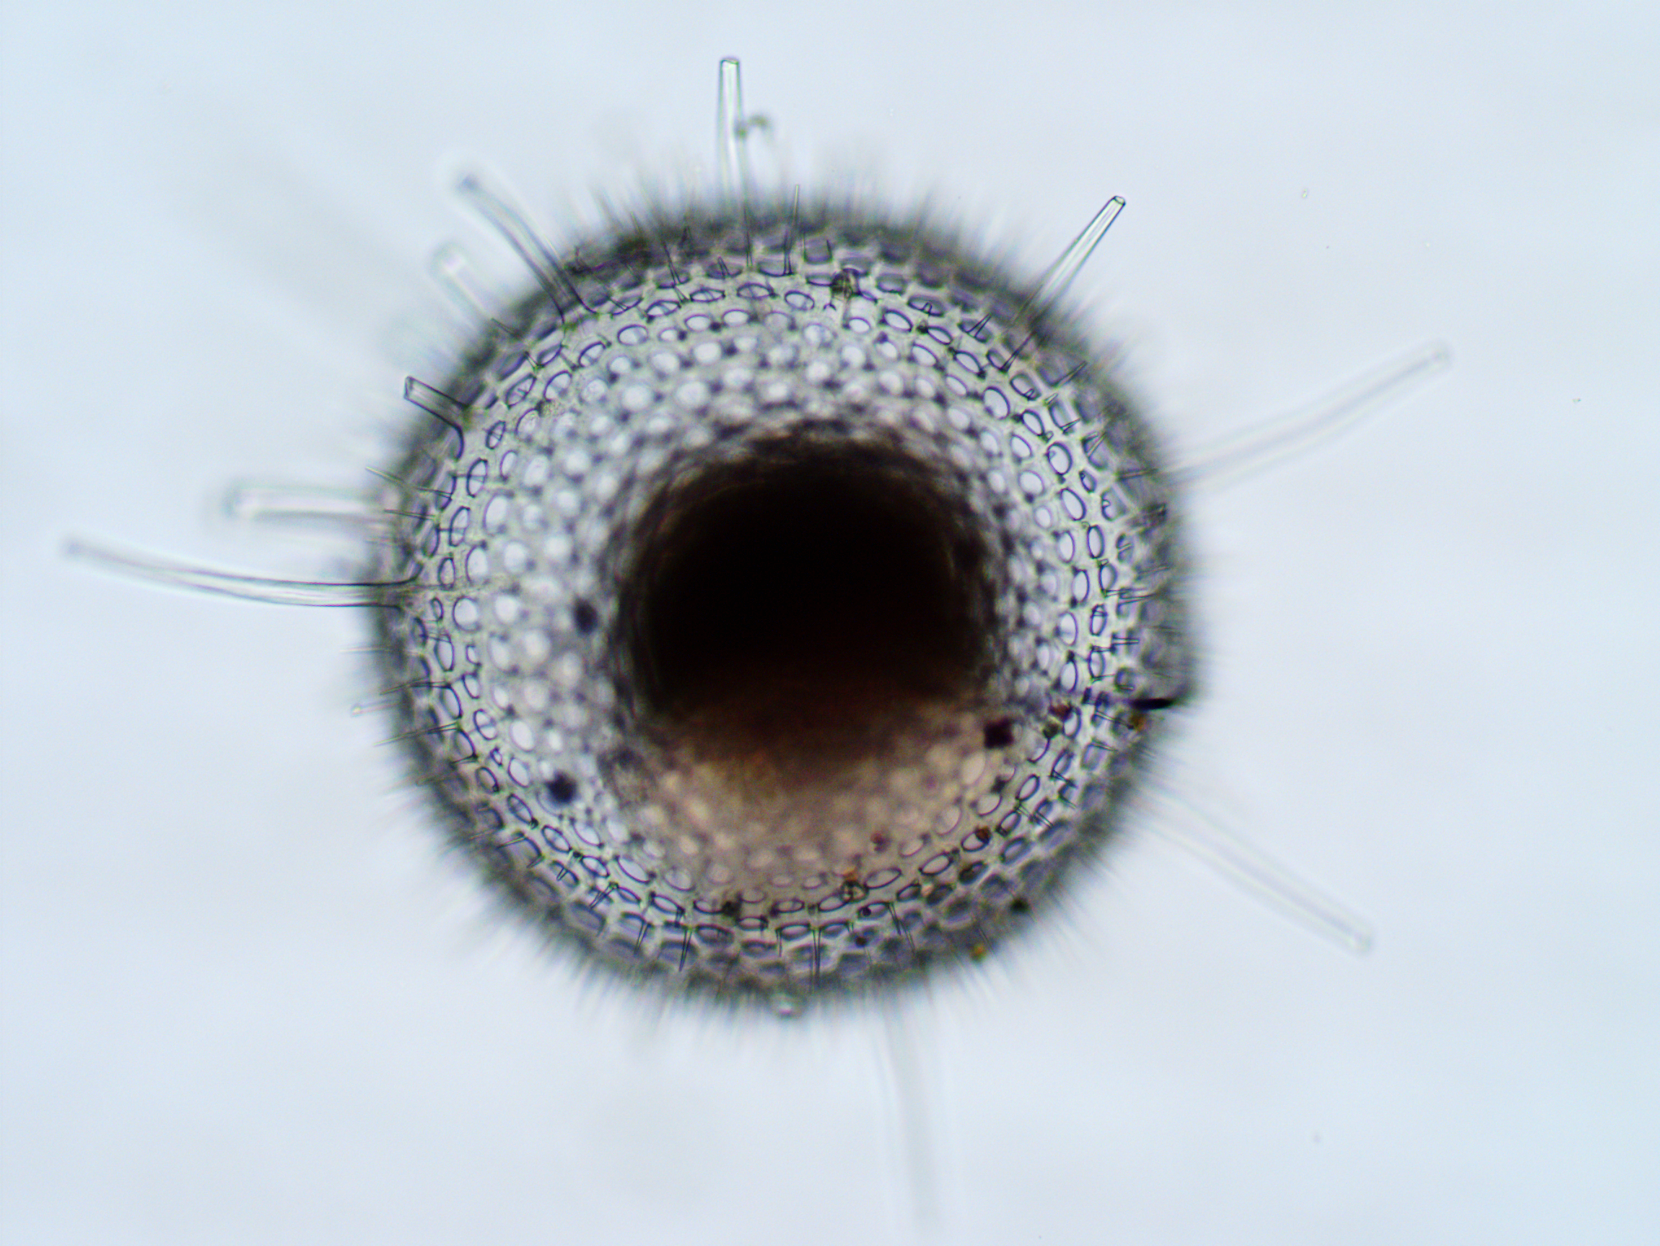 A Phaodarian radiolarian collected off the coast of California